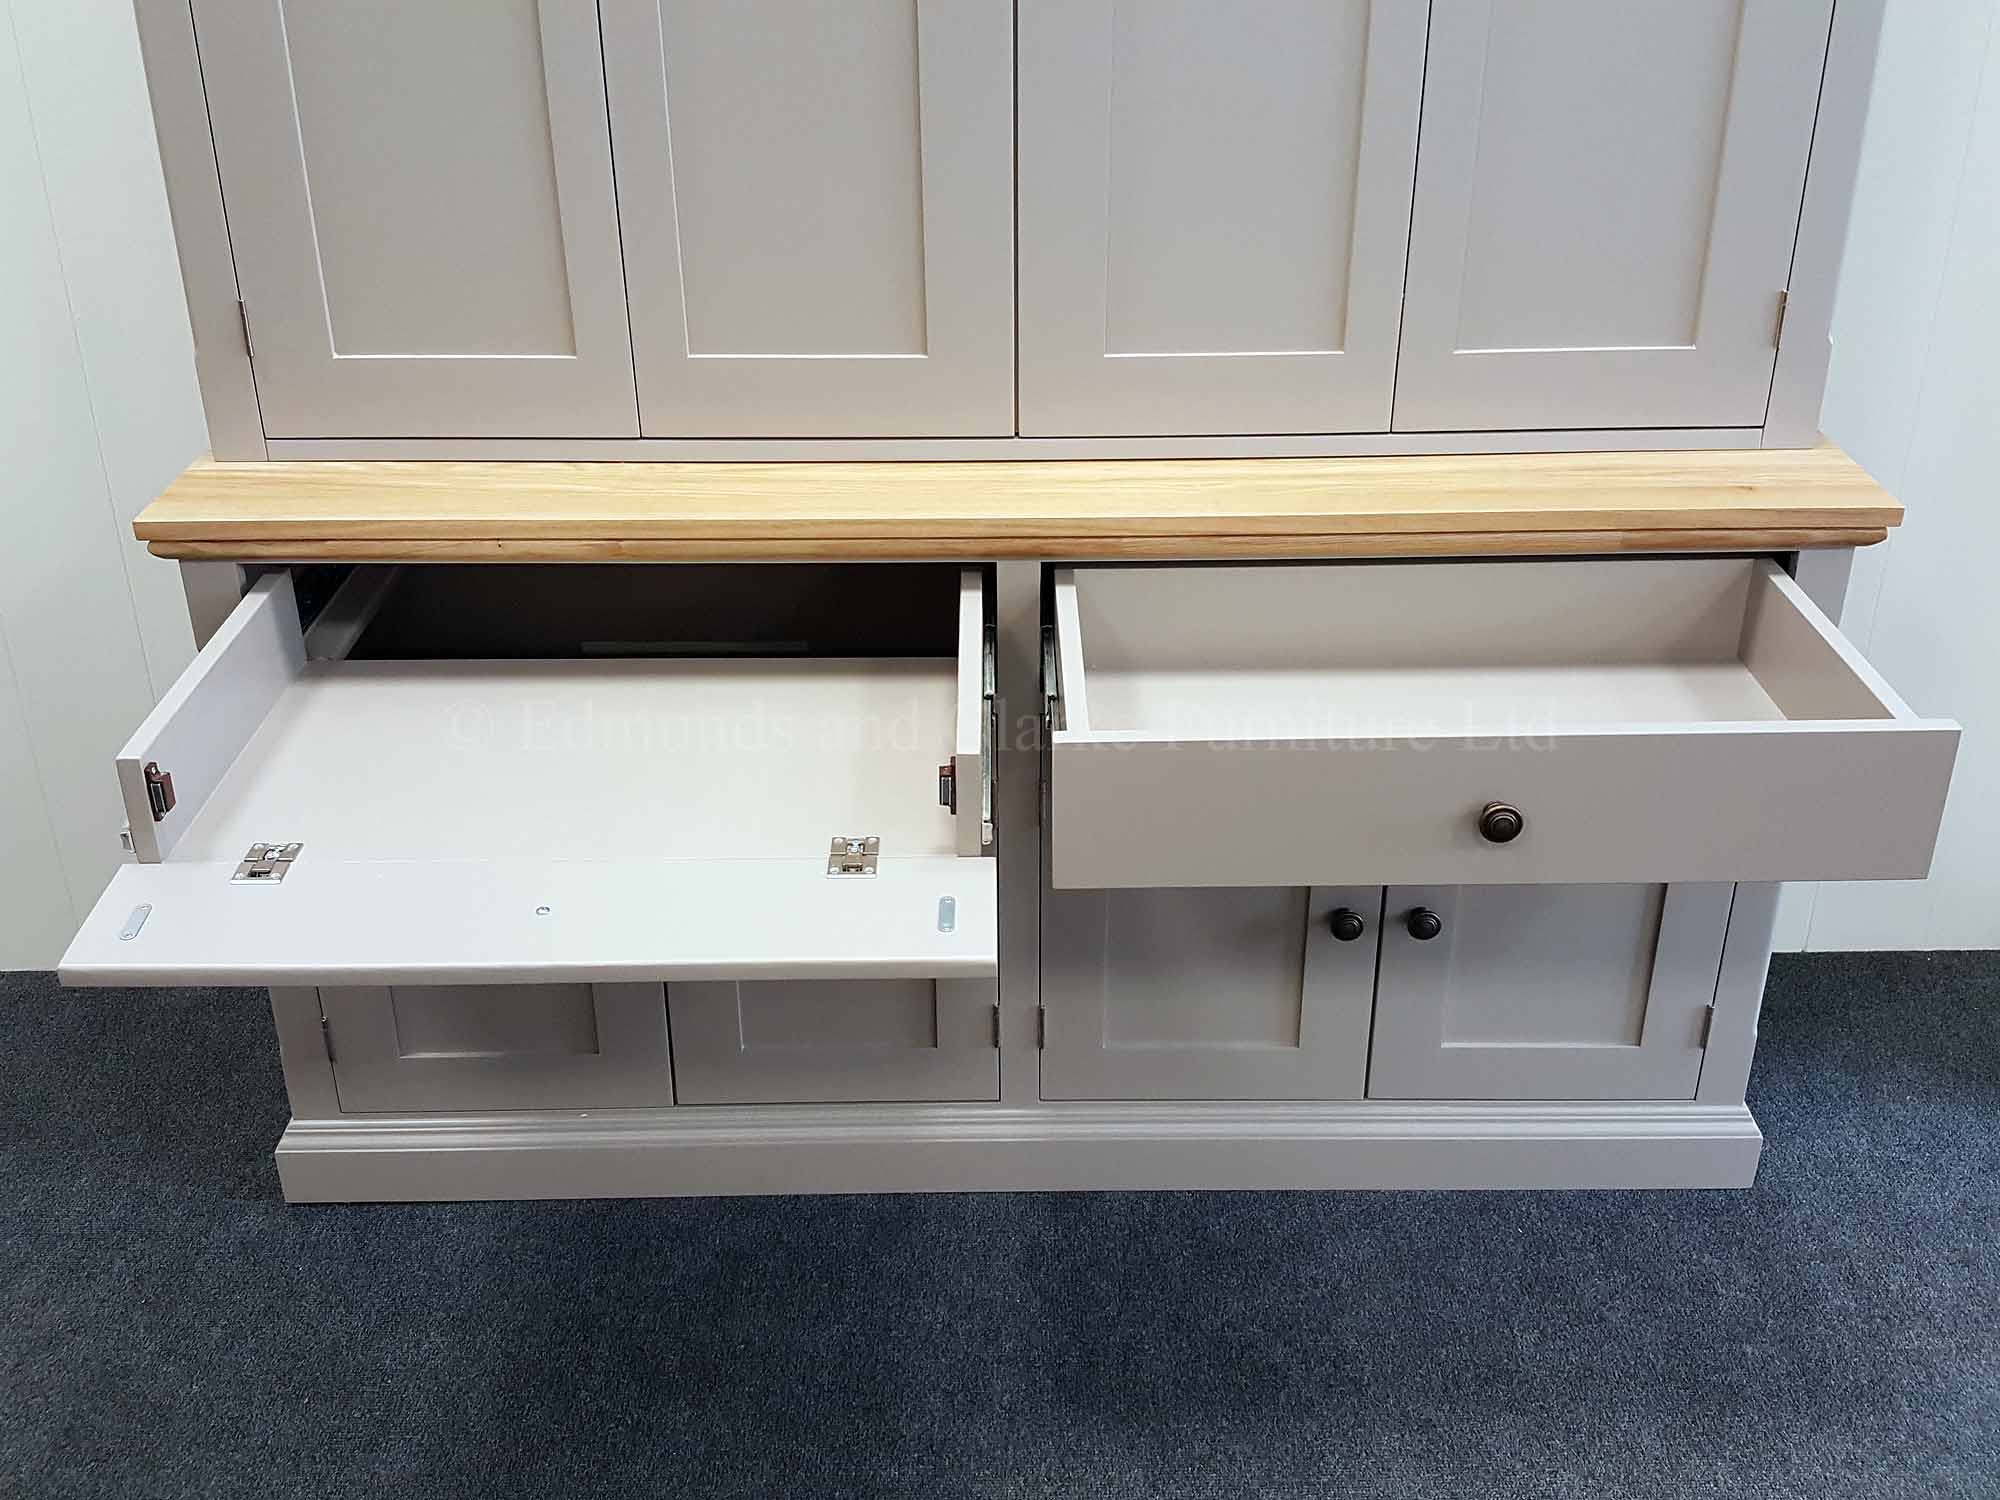 Edmunds television plasma cupboard to hide it all away